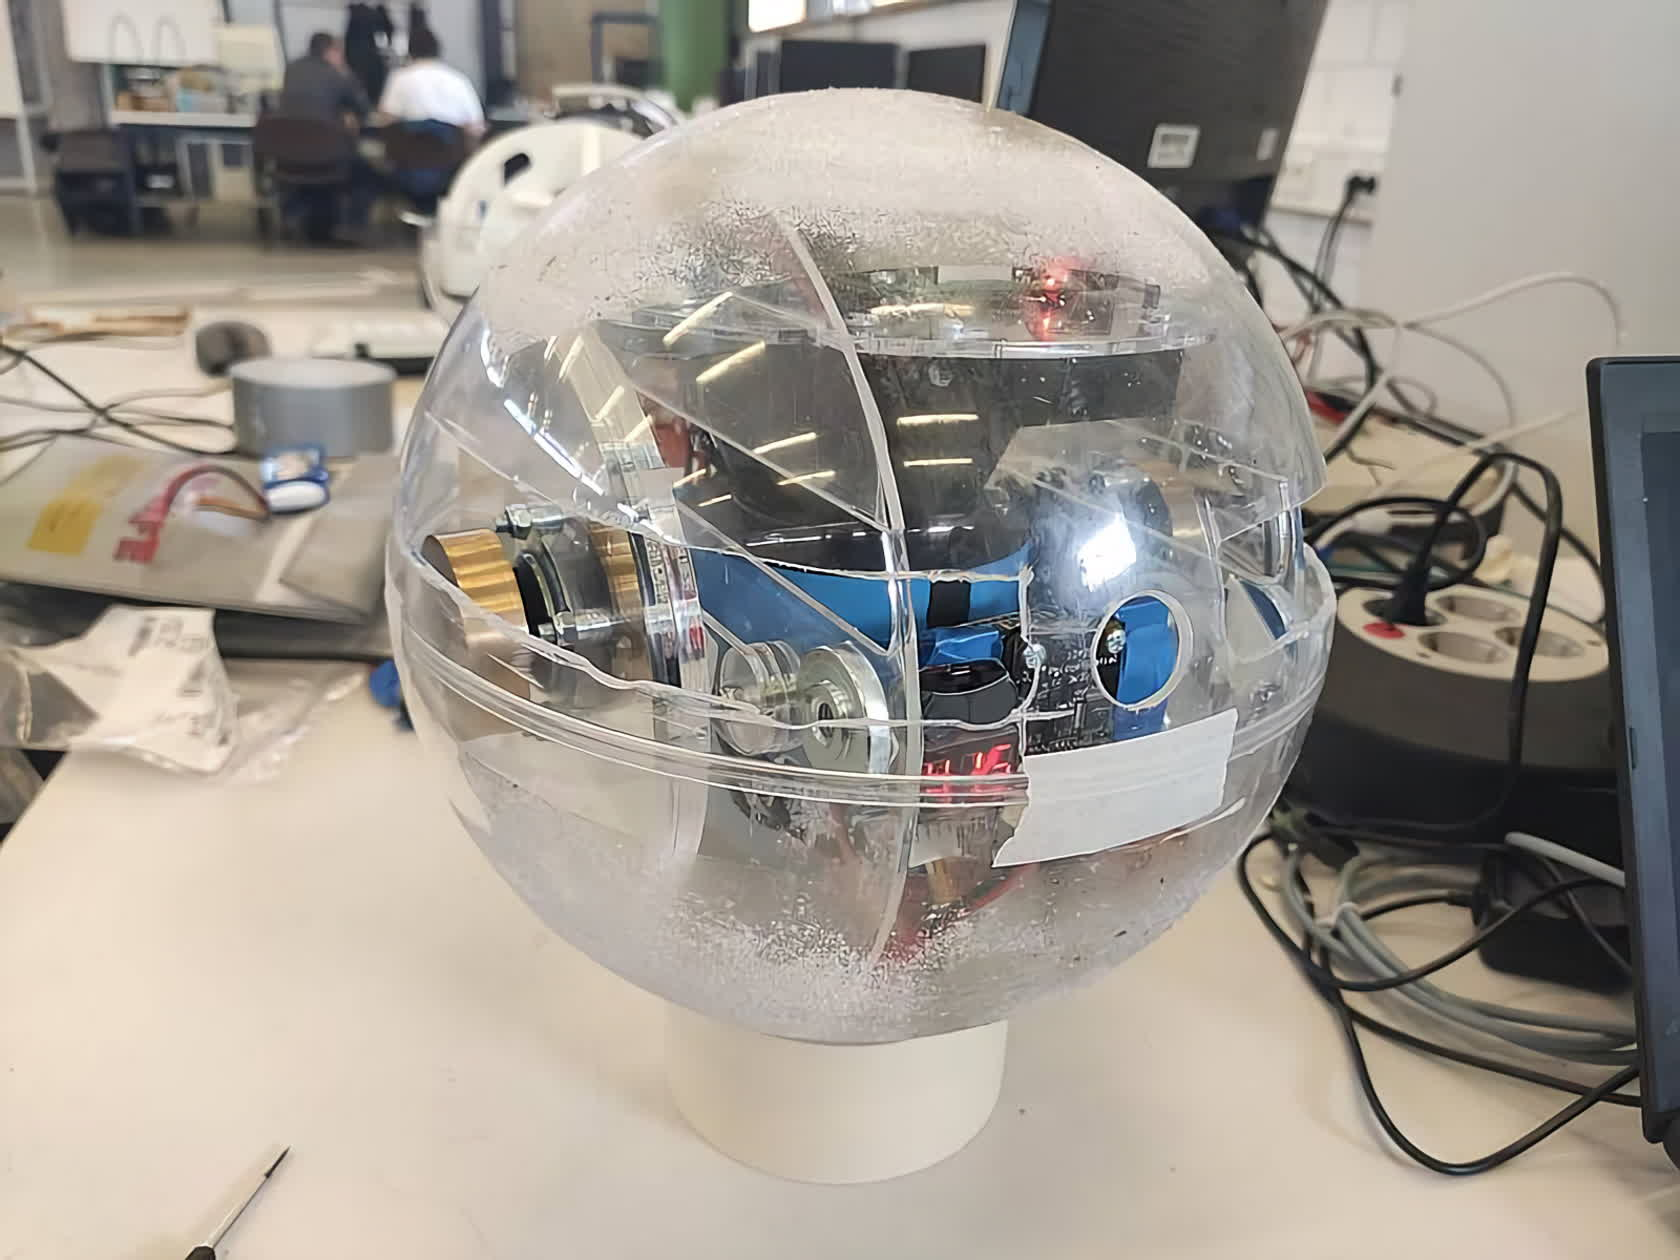 Researchers develop sphere-shaped robot for exploring underground on the Moon